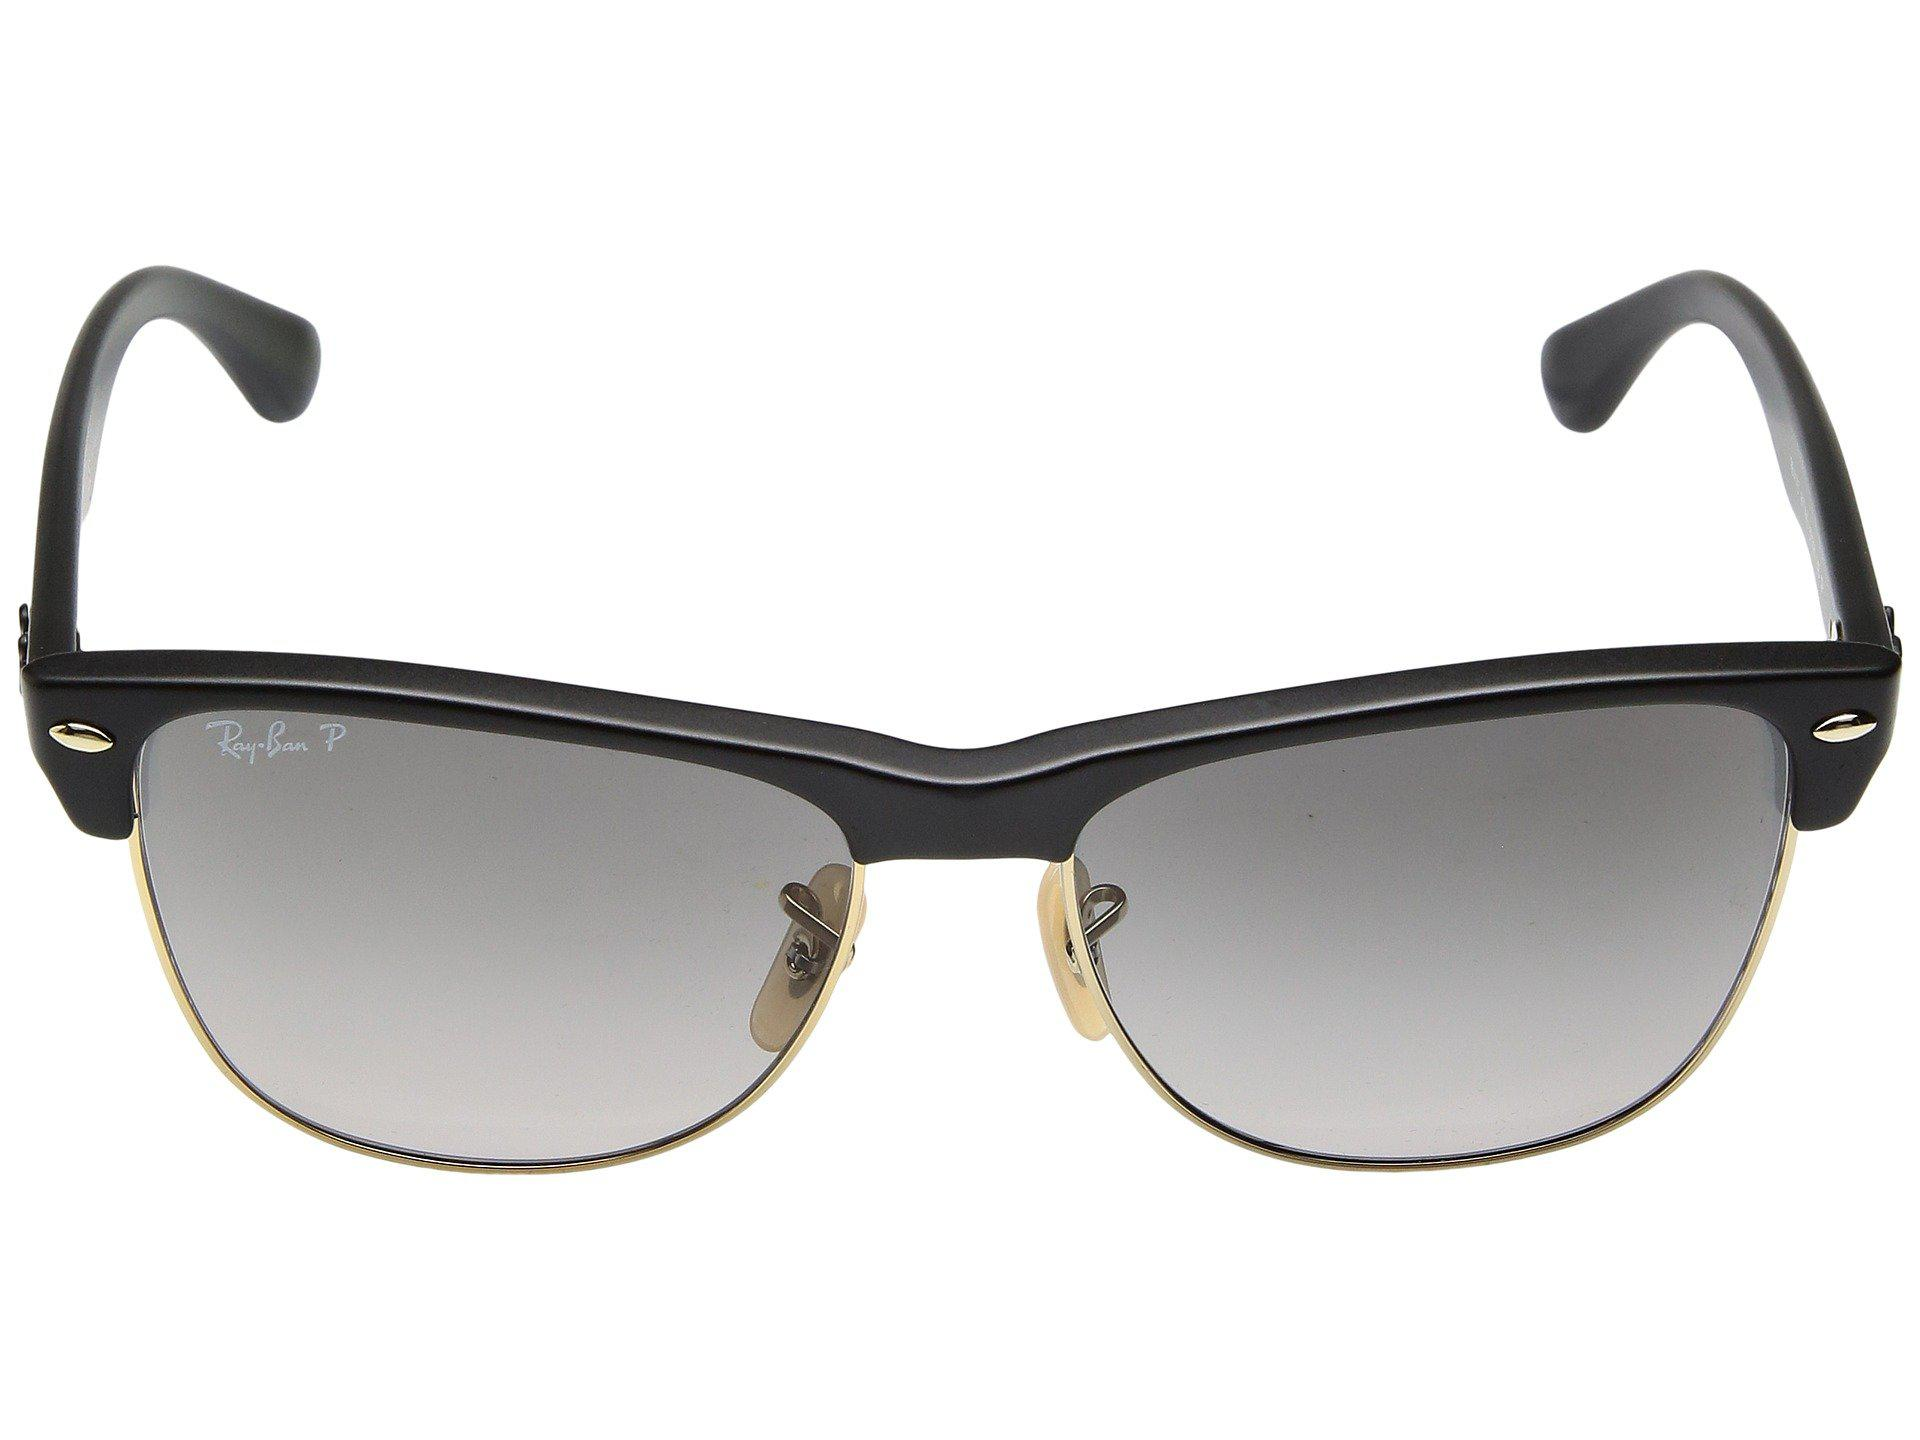 1cb24432c0 Ray-Ban - Rb4175 Oversized Clubmaster 57mm (black grey Gradient) Fashion  Sunglasses. View fullscreen